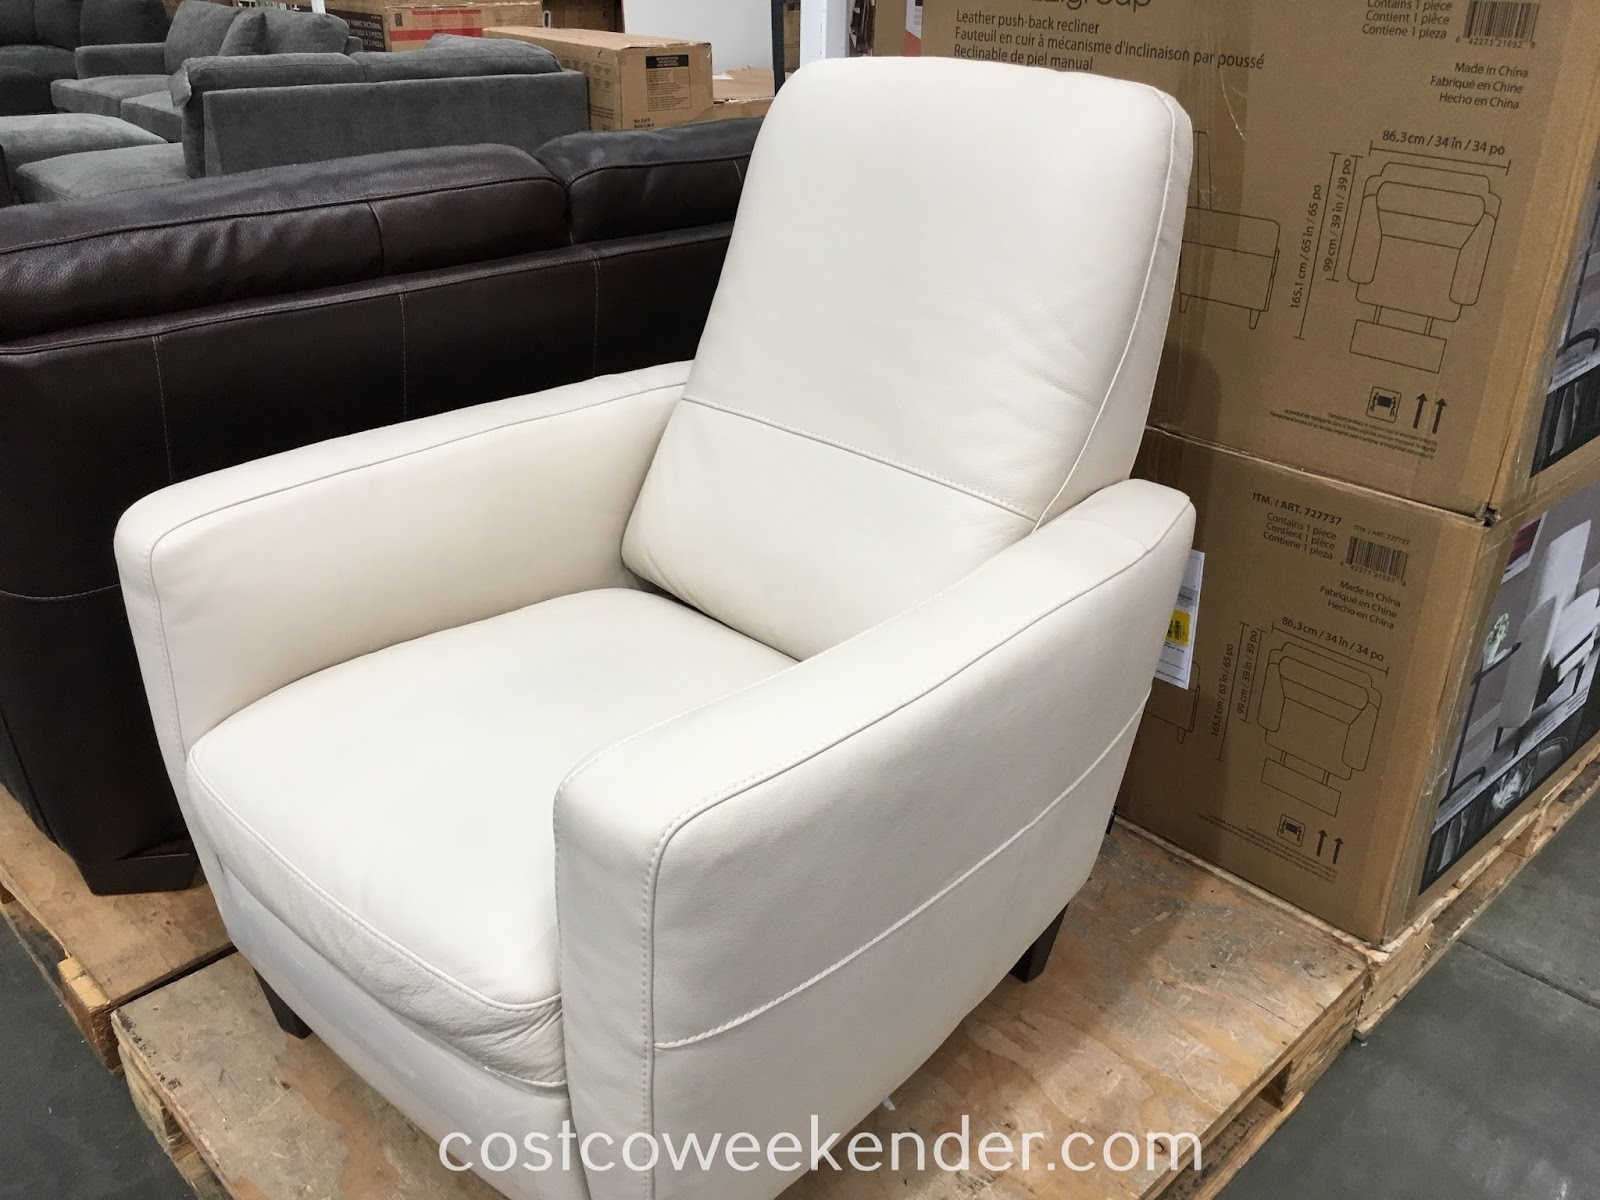 Kick back and relax in your home on the Natuzzi Group Leather Push-back Recliner